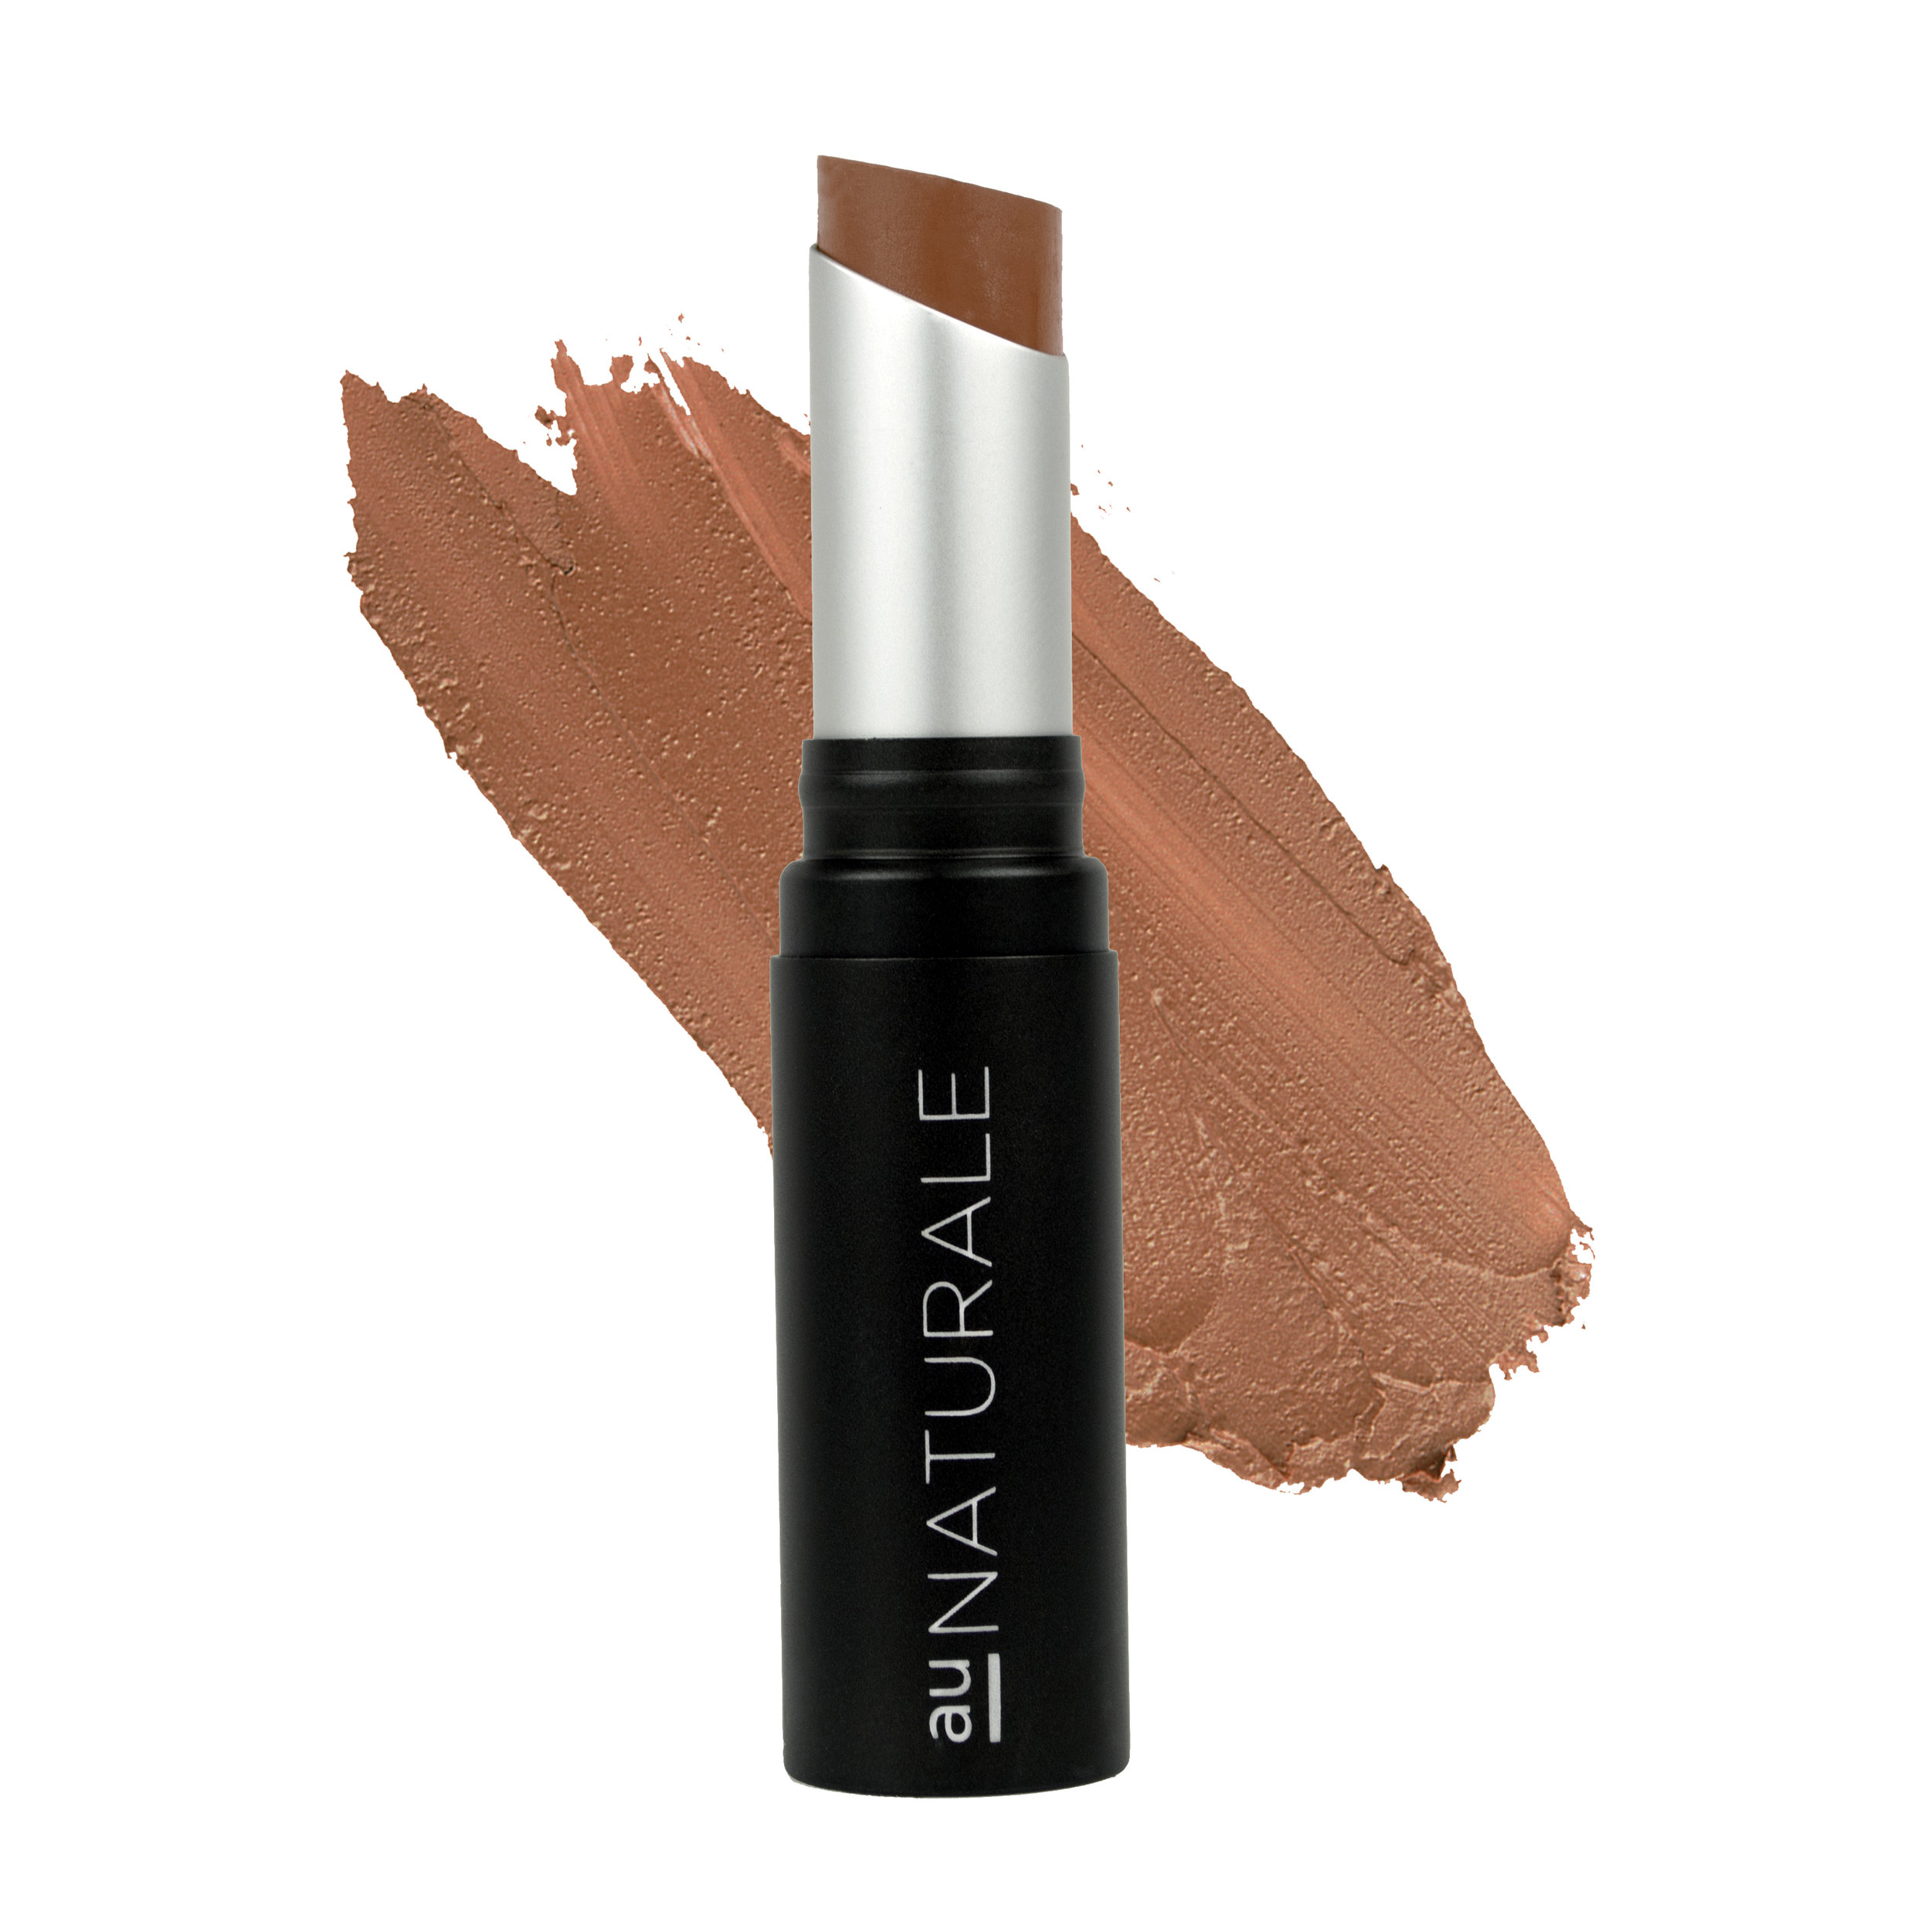 Tawny Completely Covered Creme Concealer